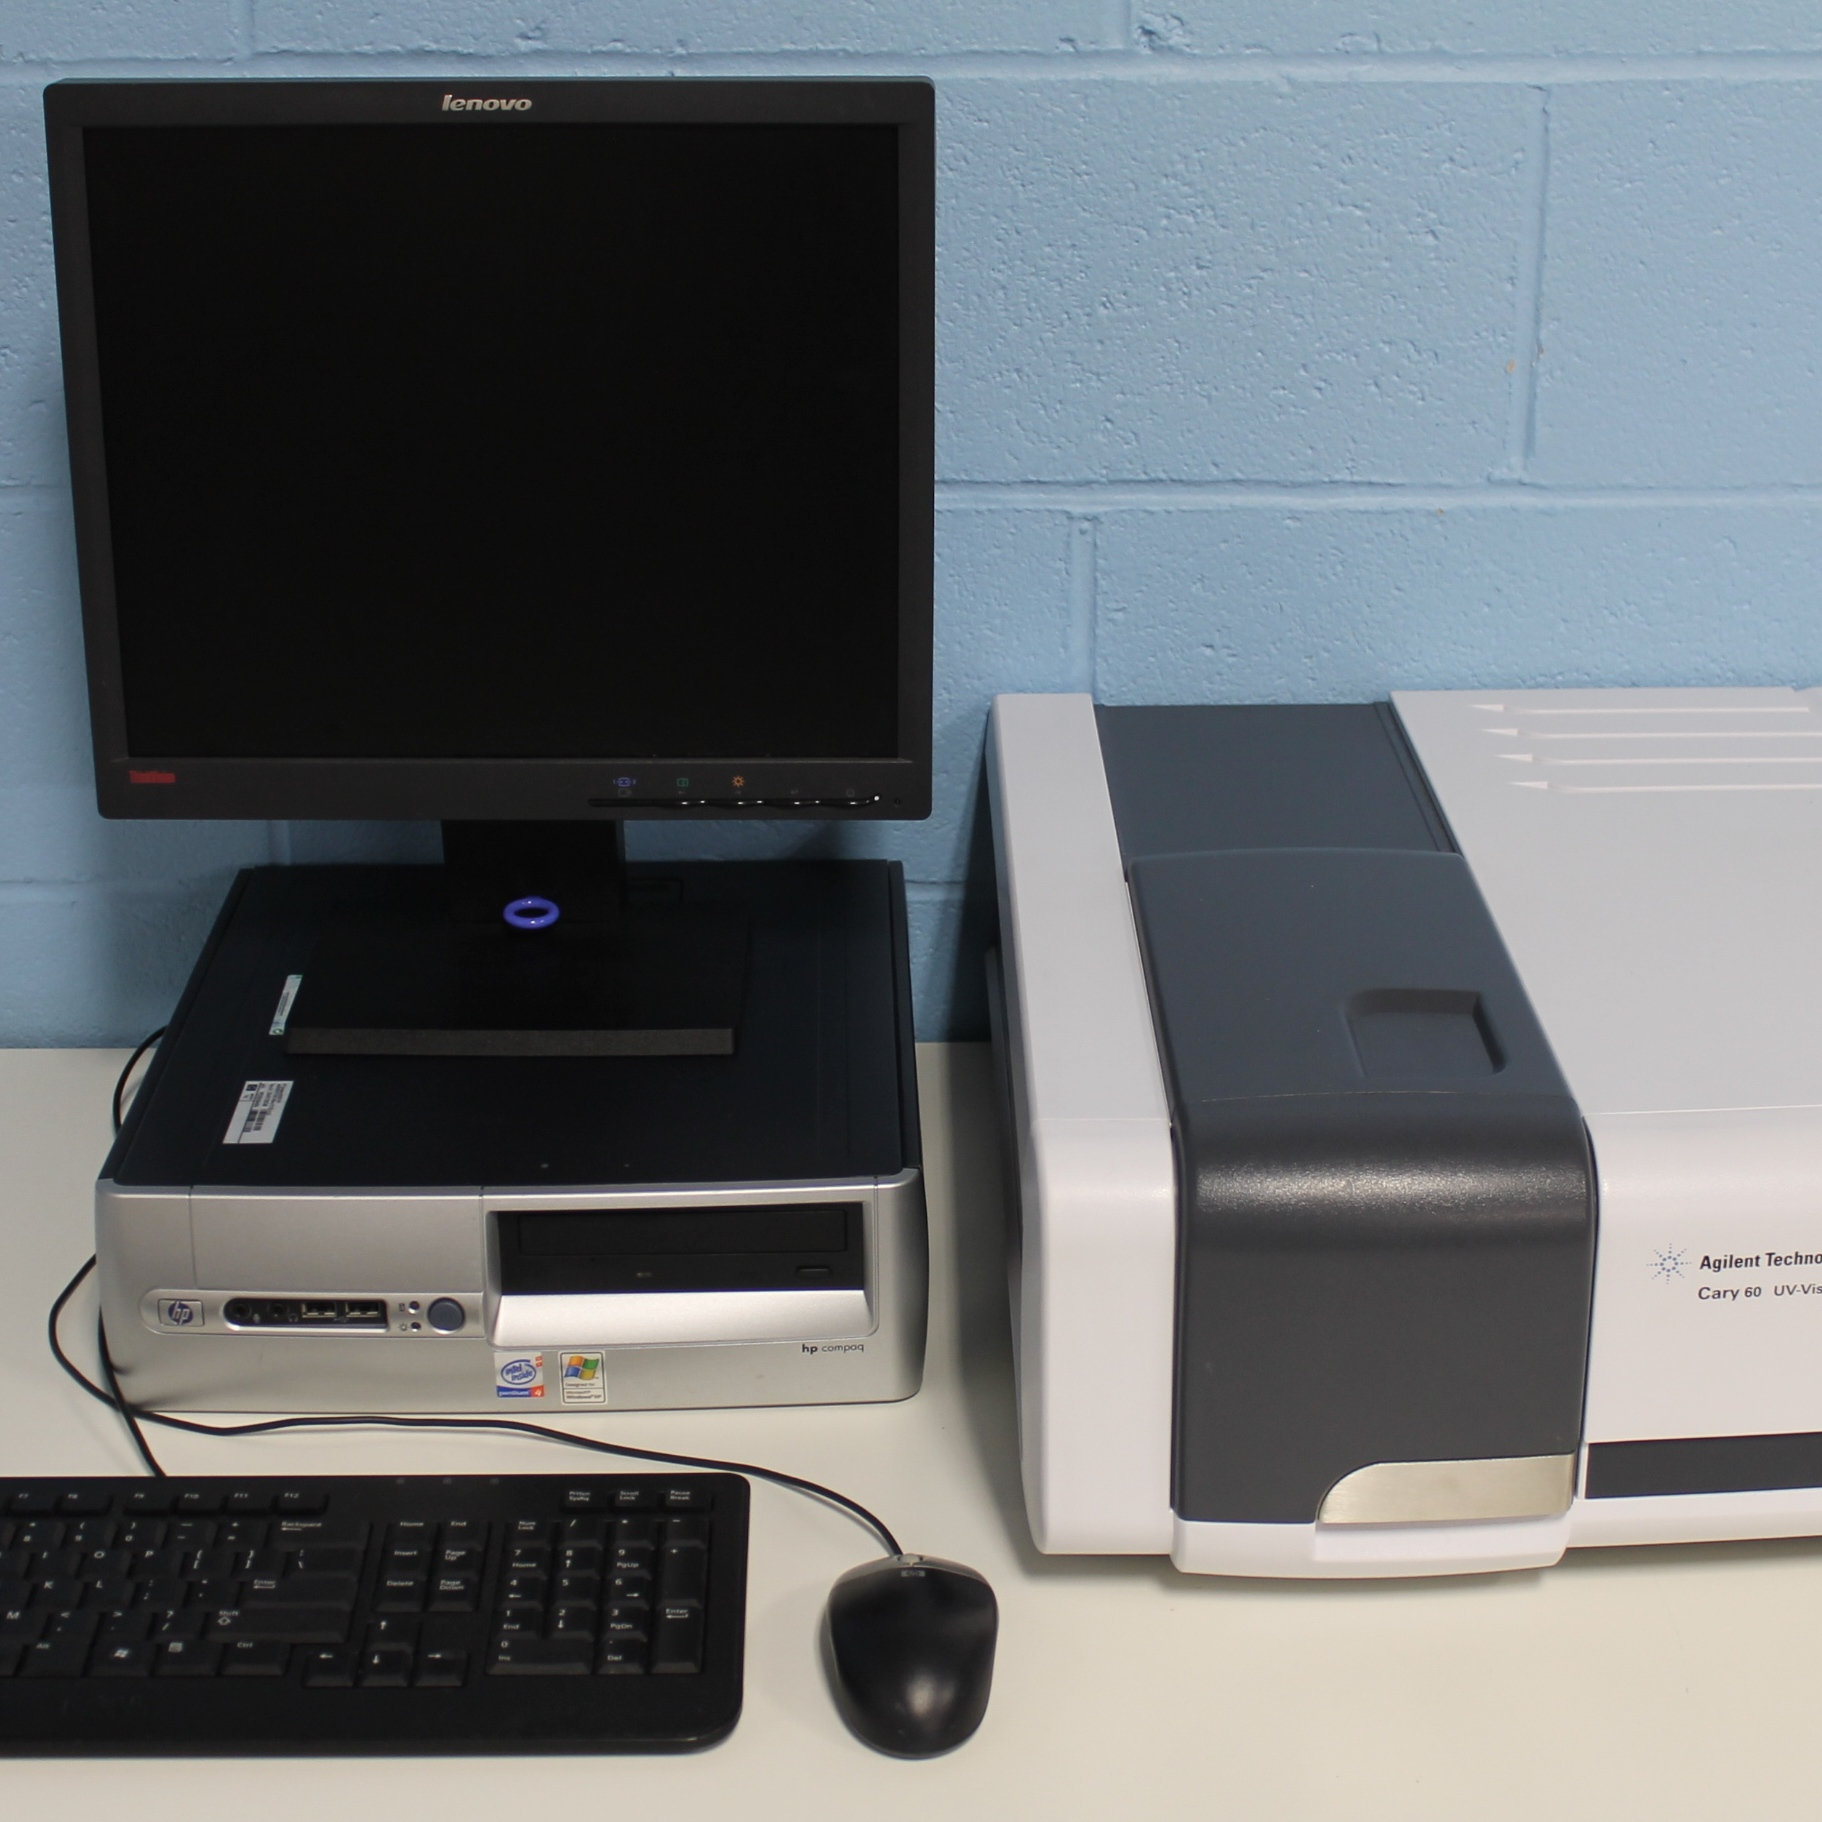 Agilent Technologies Cary 60 UV-Vis Spectrophotometer Model G6860A Image